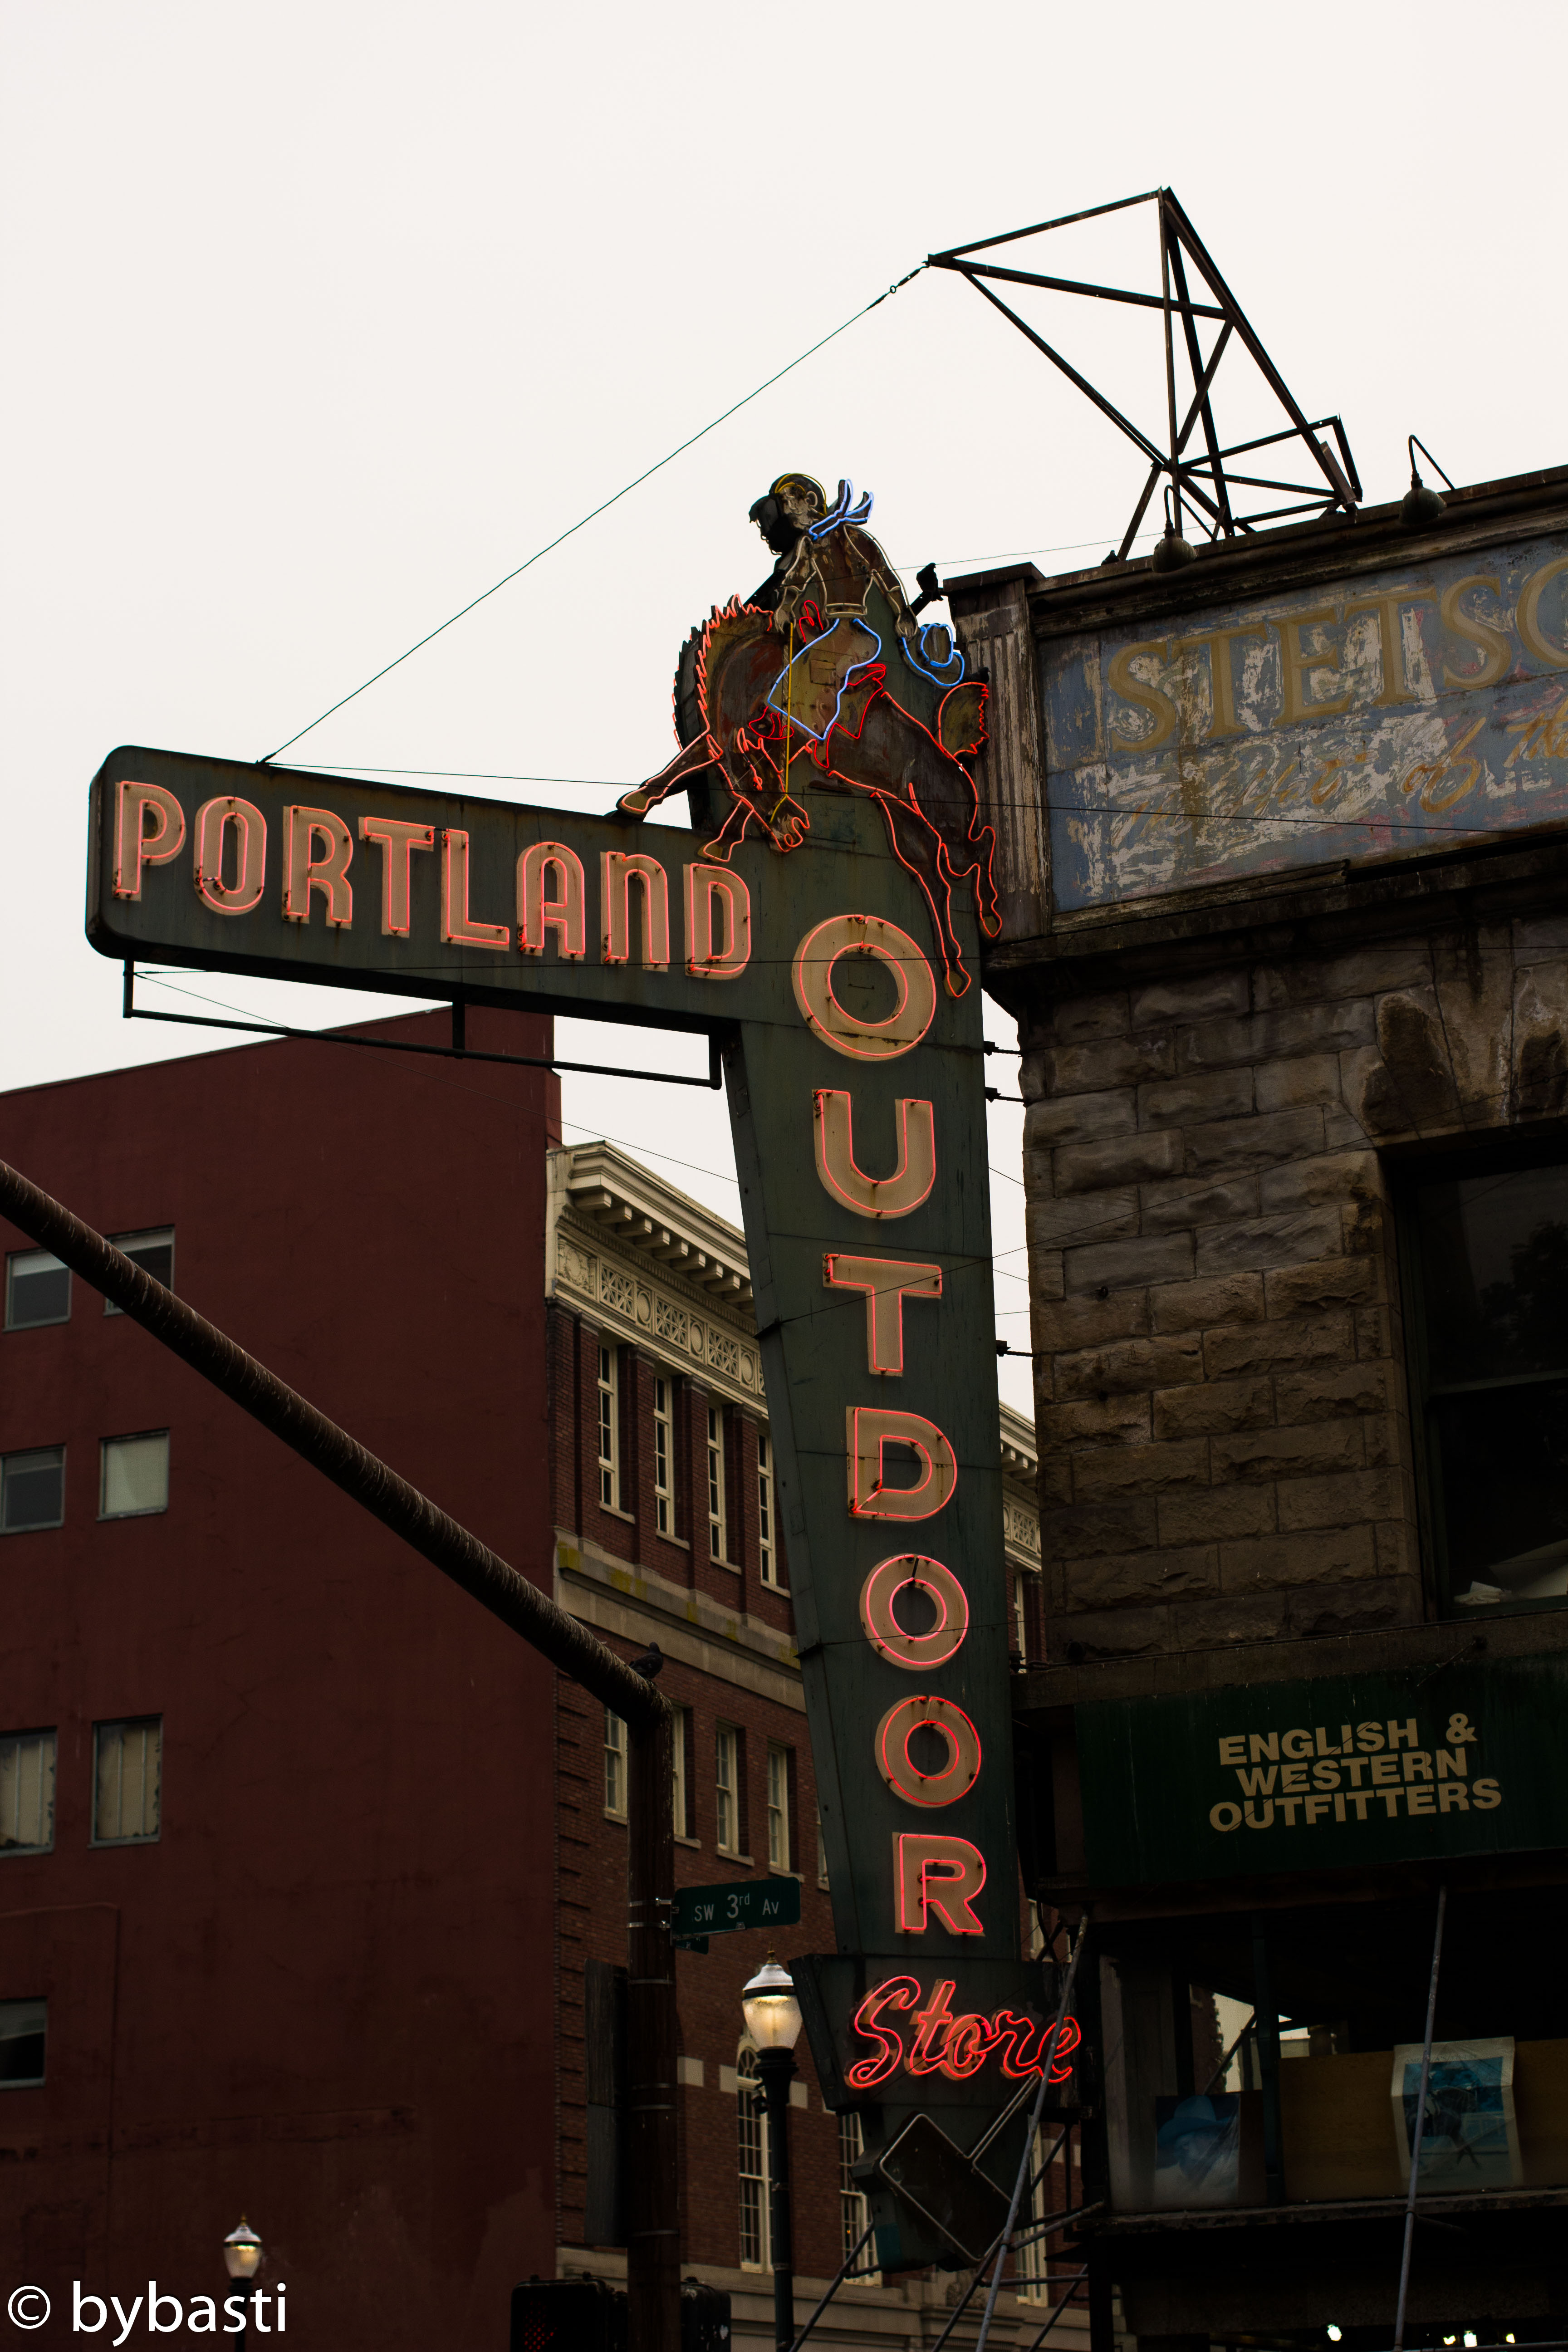 This is Portland 019